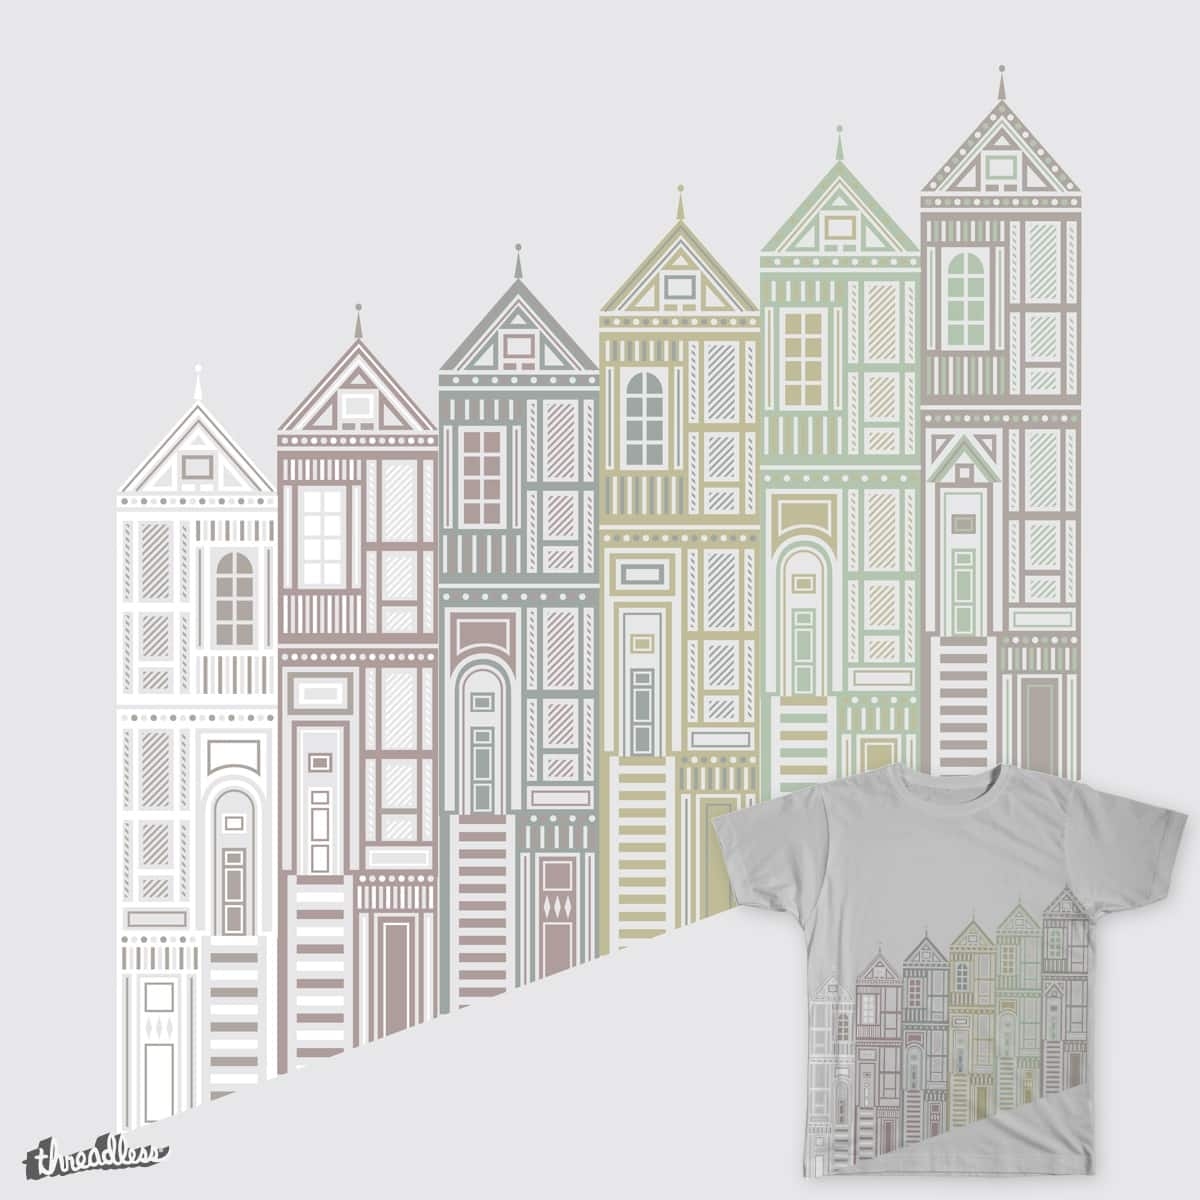 Painted Ladies by clinard on Threadless